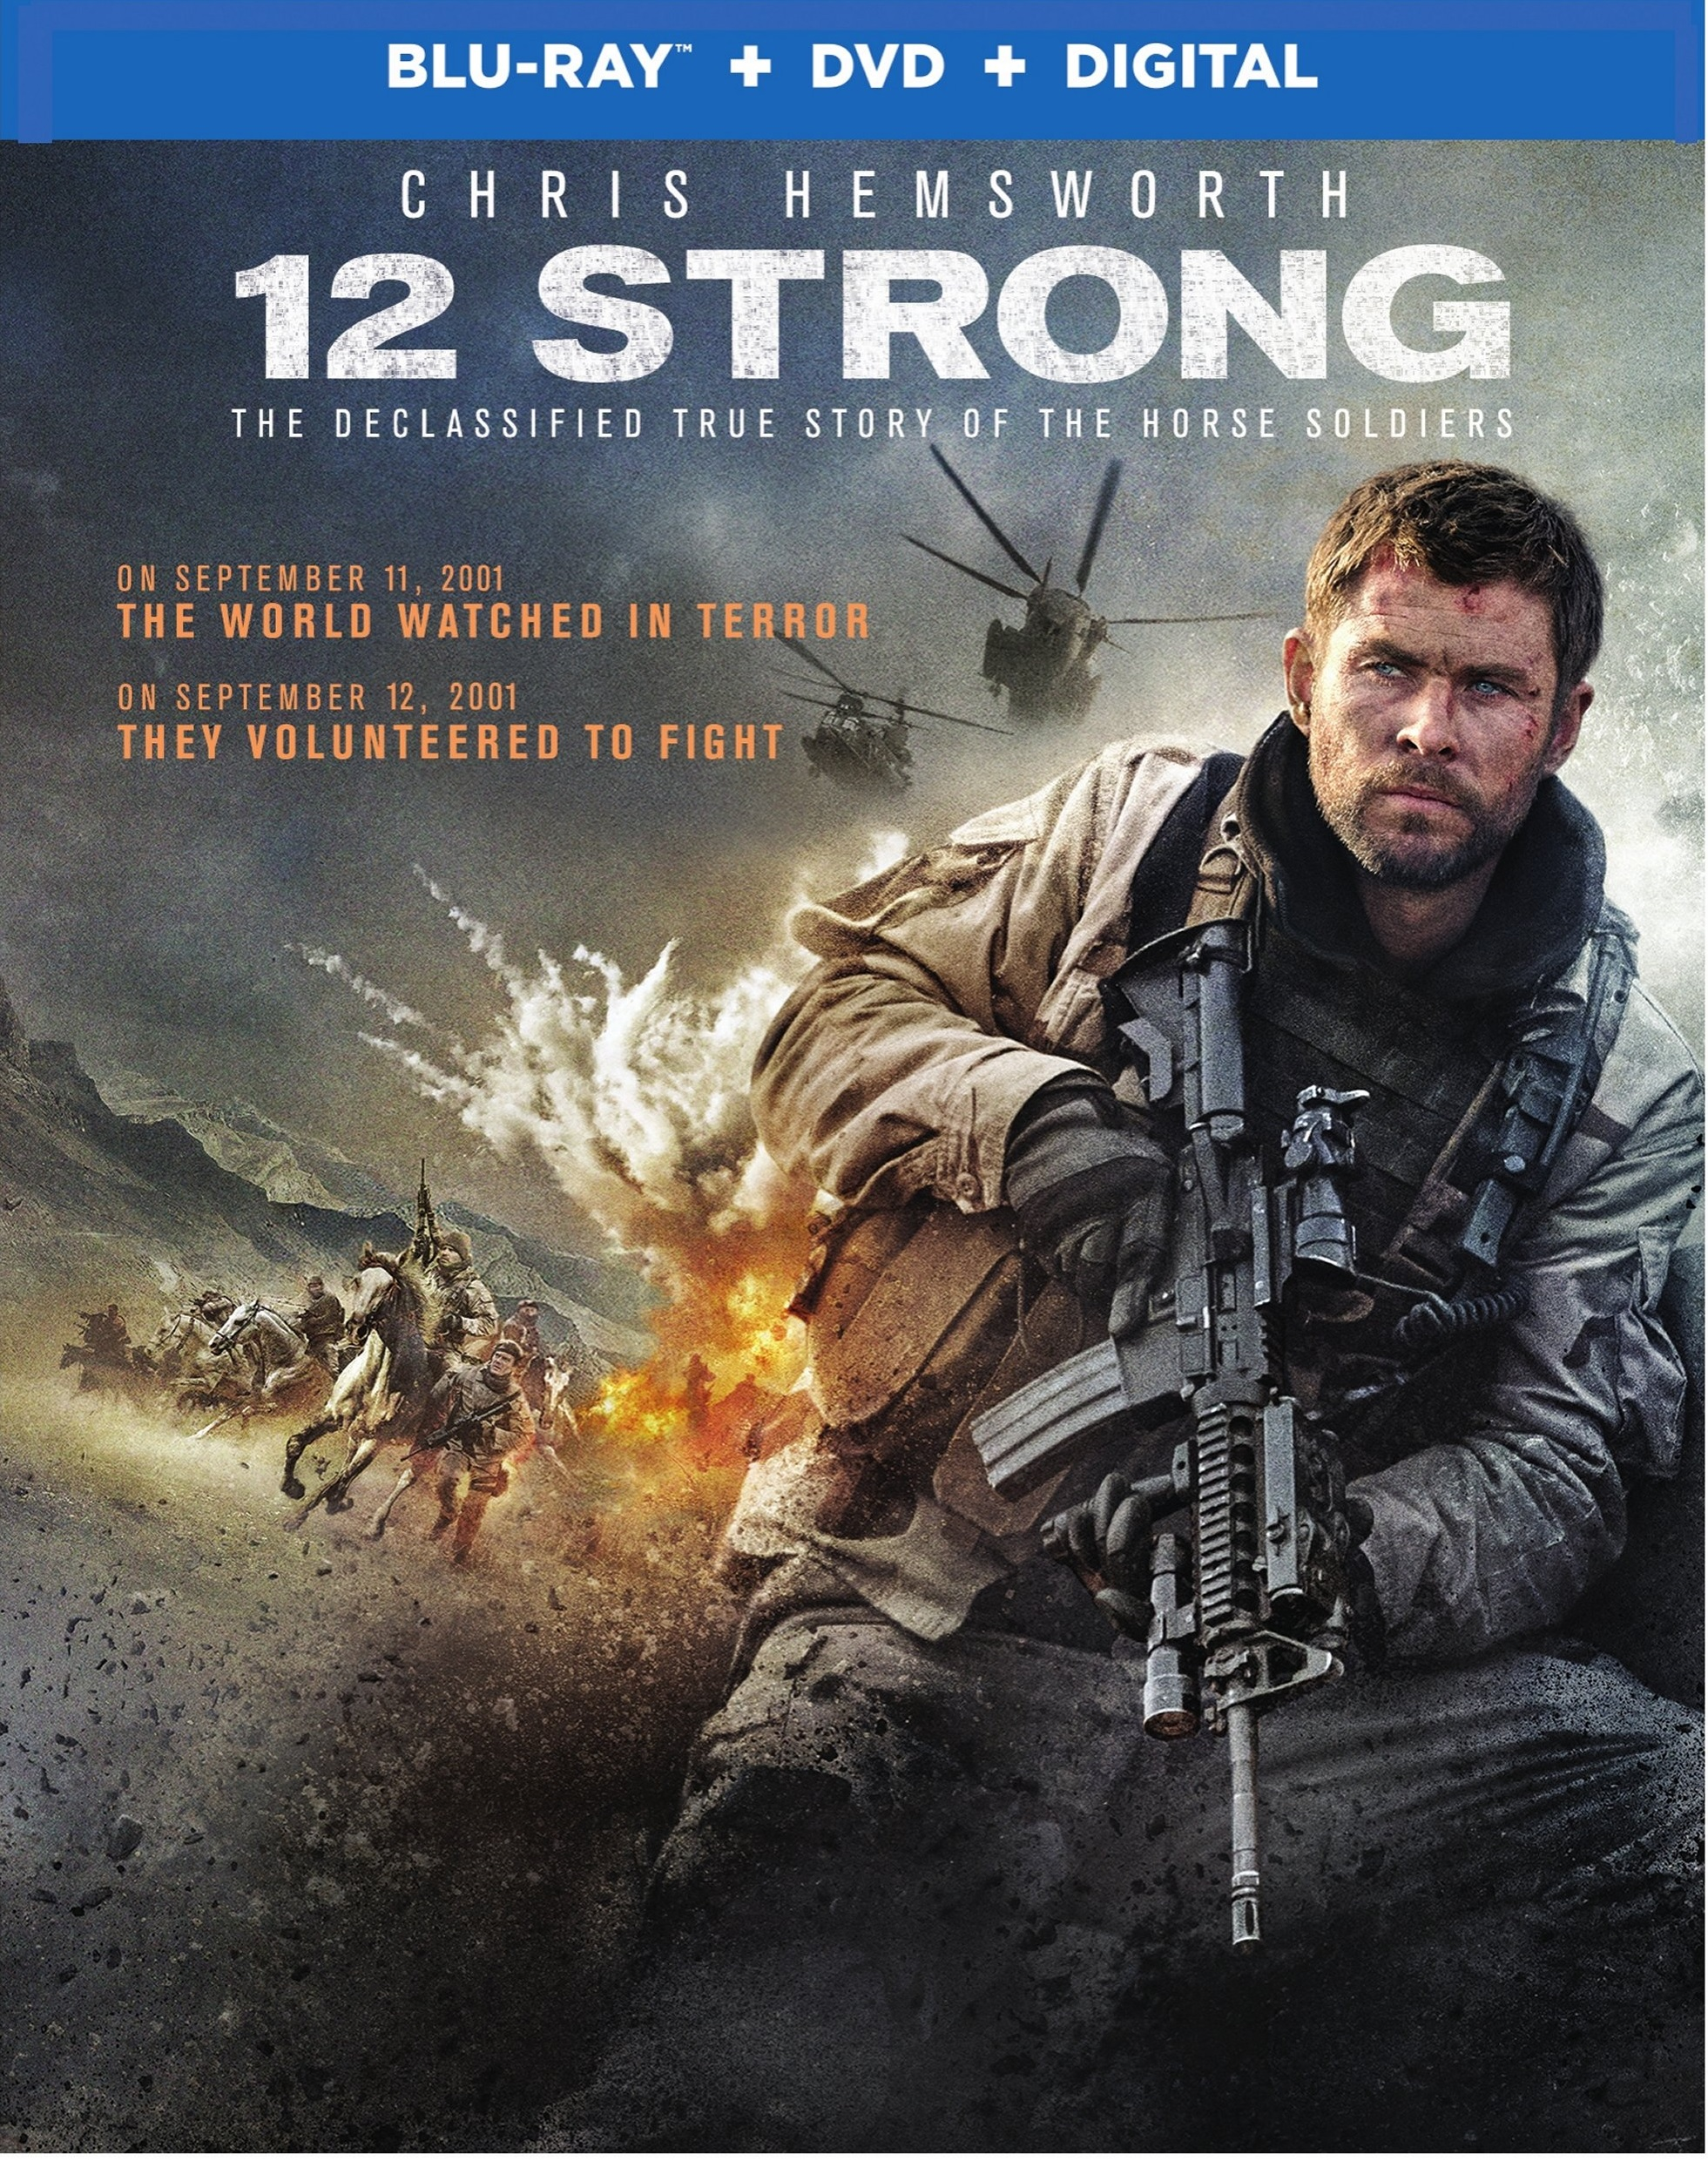 12 Strong Blu-ray Review